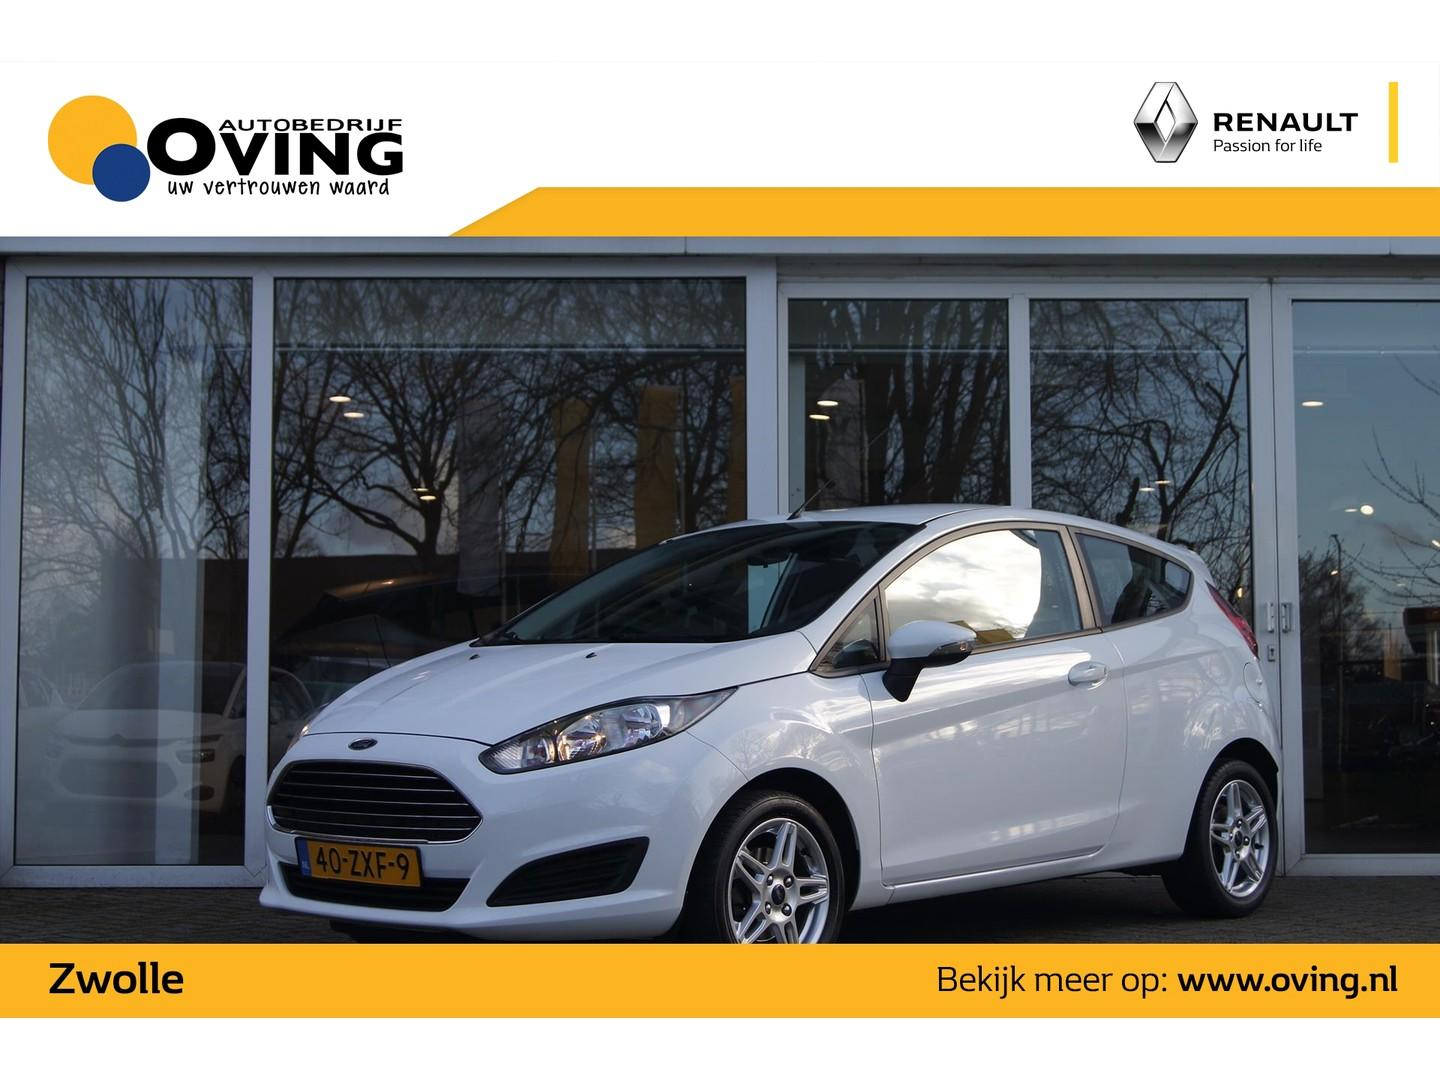 Ford Fiesta 1.0 65pk 3d s/s champions edition